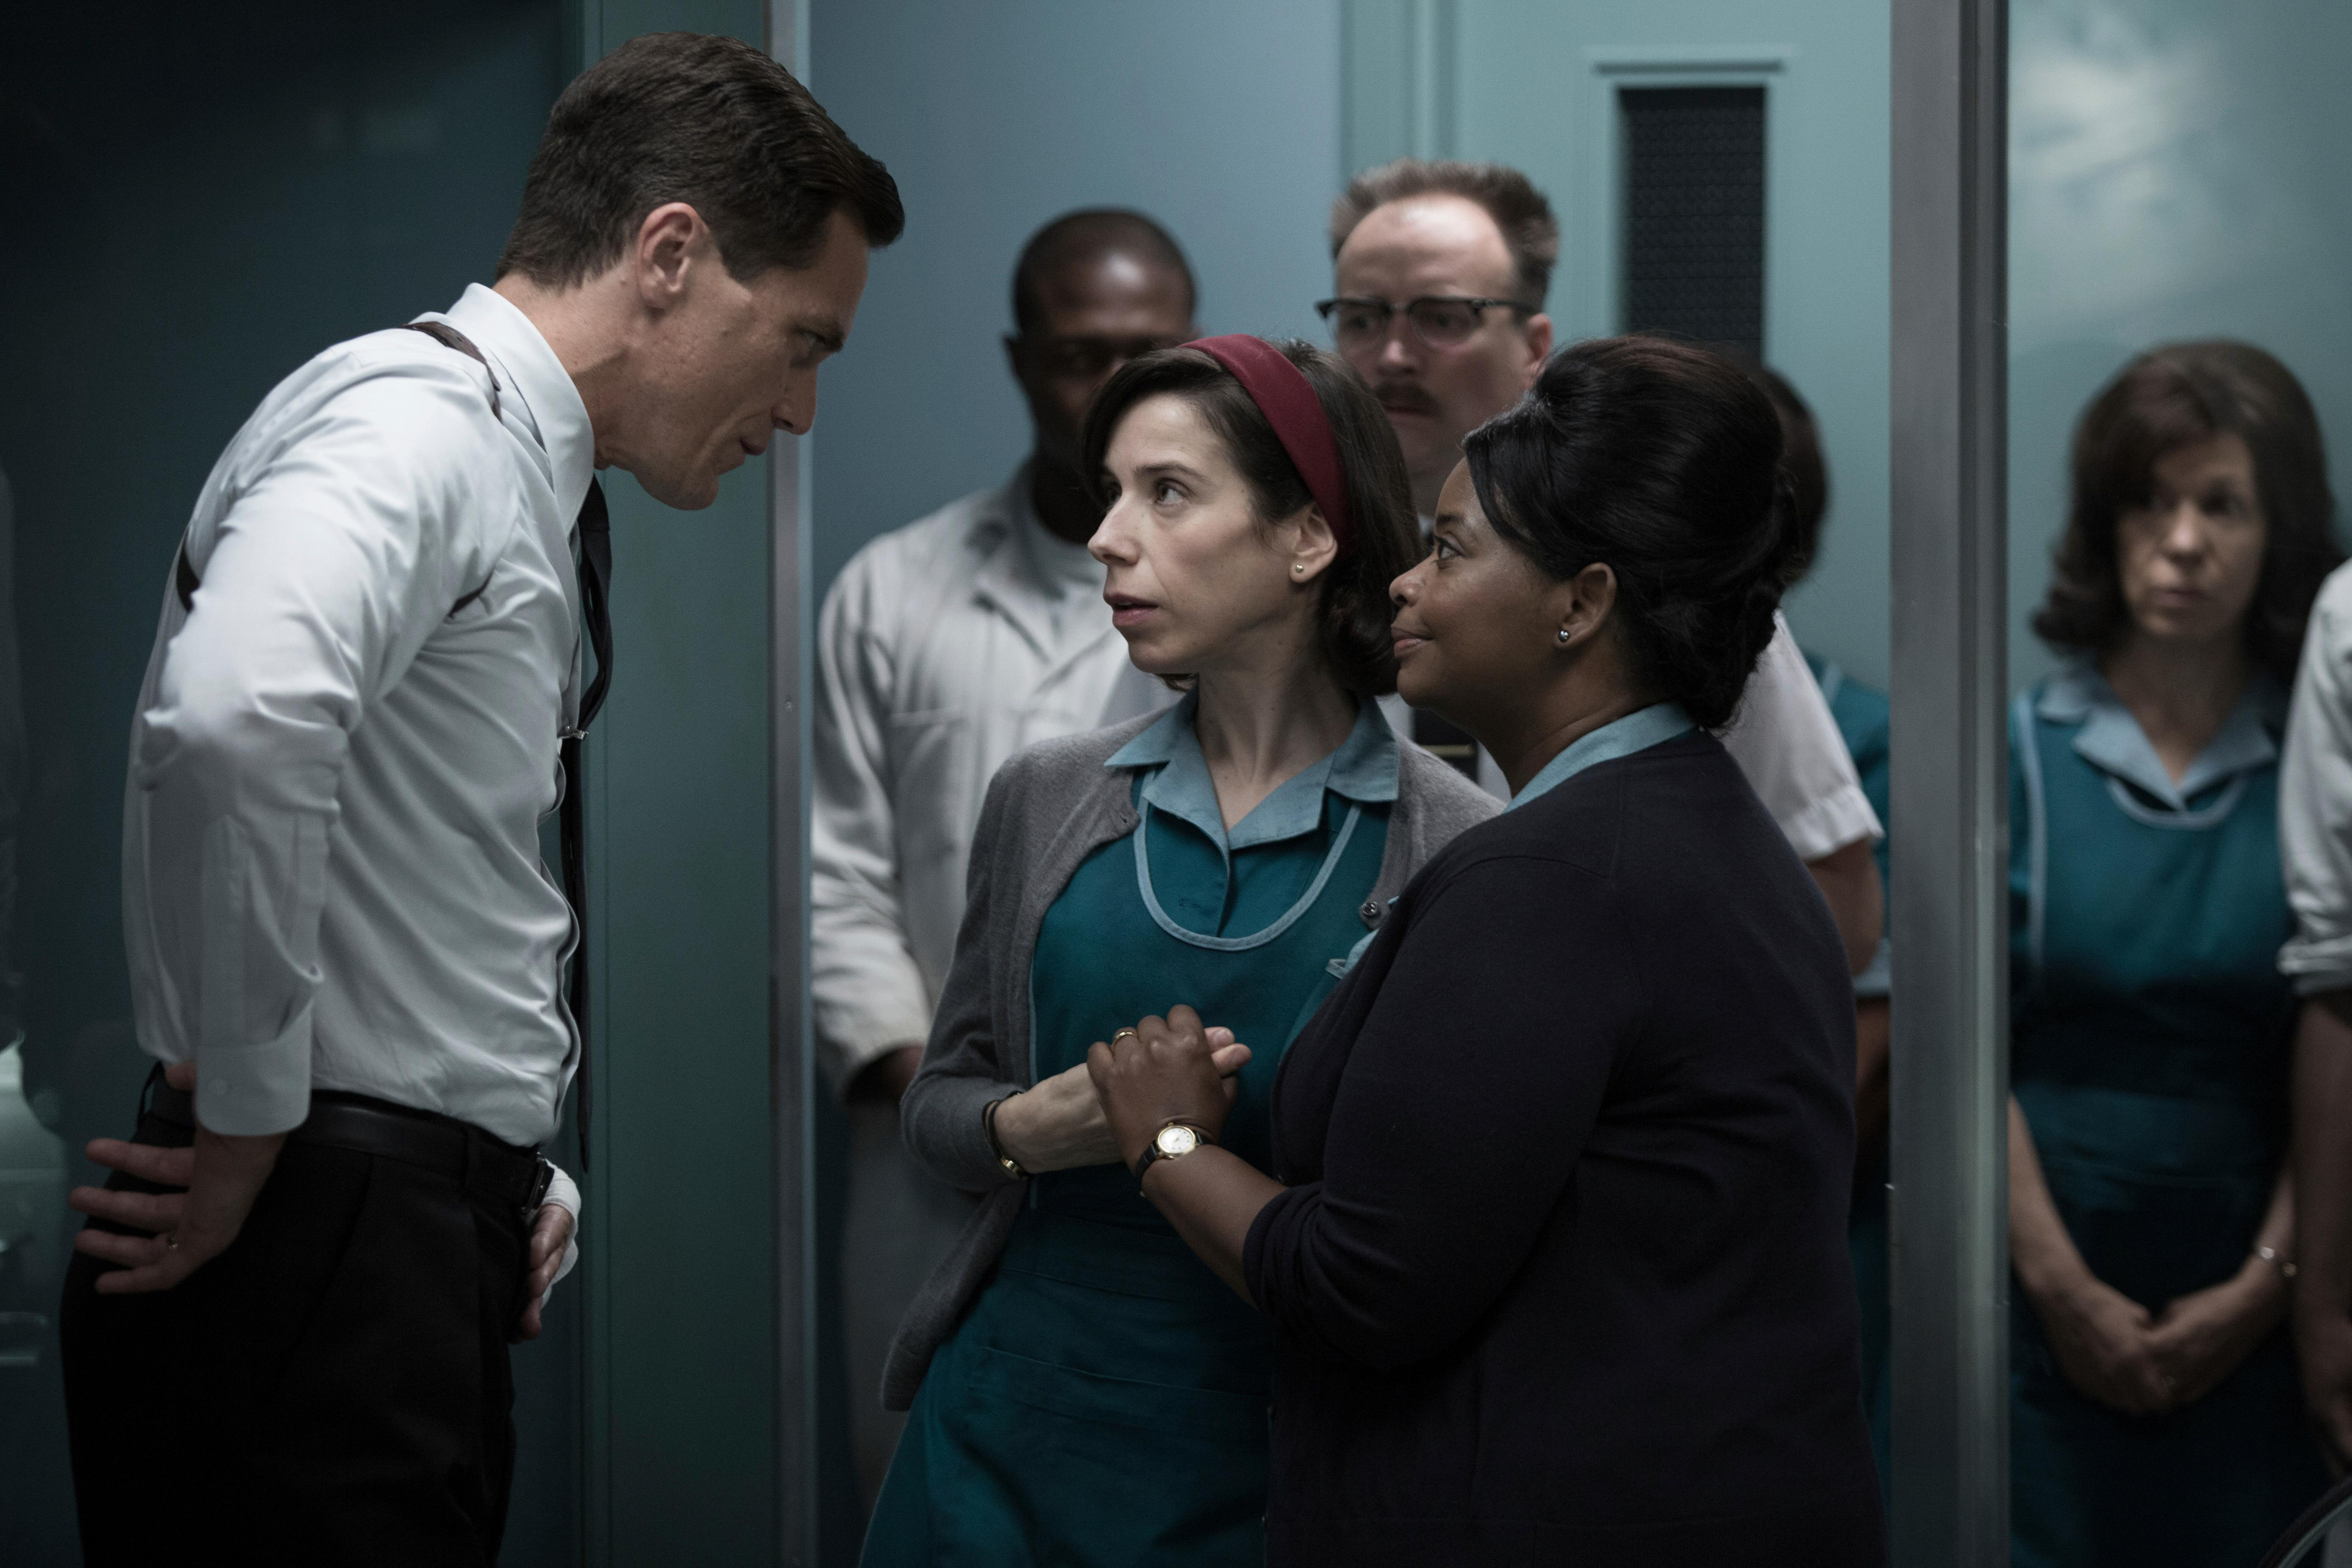 "This image released by Fox Searchlight Pictures shows Michael Shannon, from left, Sally Hawkins and Octavia Spencer in a scene from the film, ""The Shape of Water."" Guillermo del Toro's Cold War fantasy tale is the leading nominee at the Critics' Choice Awards. It received 14 nominations, including for best picture, best actress for Sally Hawkins and best director for del Toro. (Fox Searchlight Pictures via AP)"